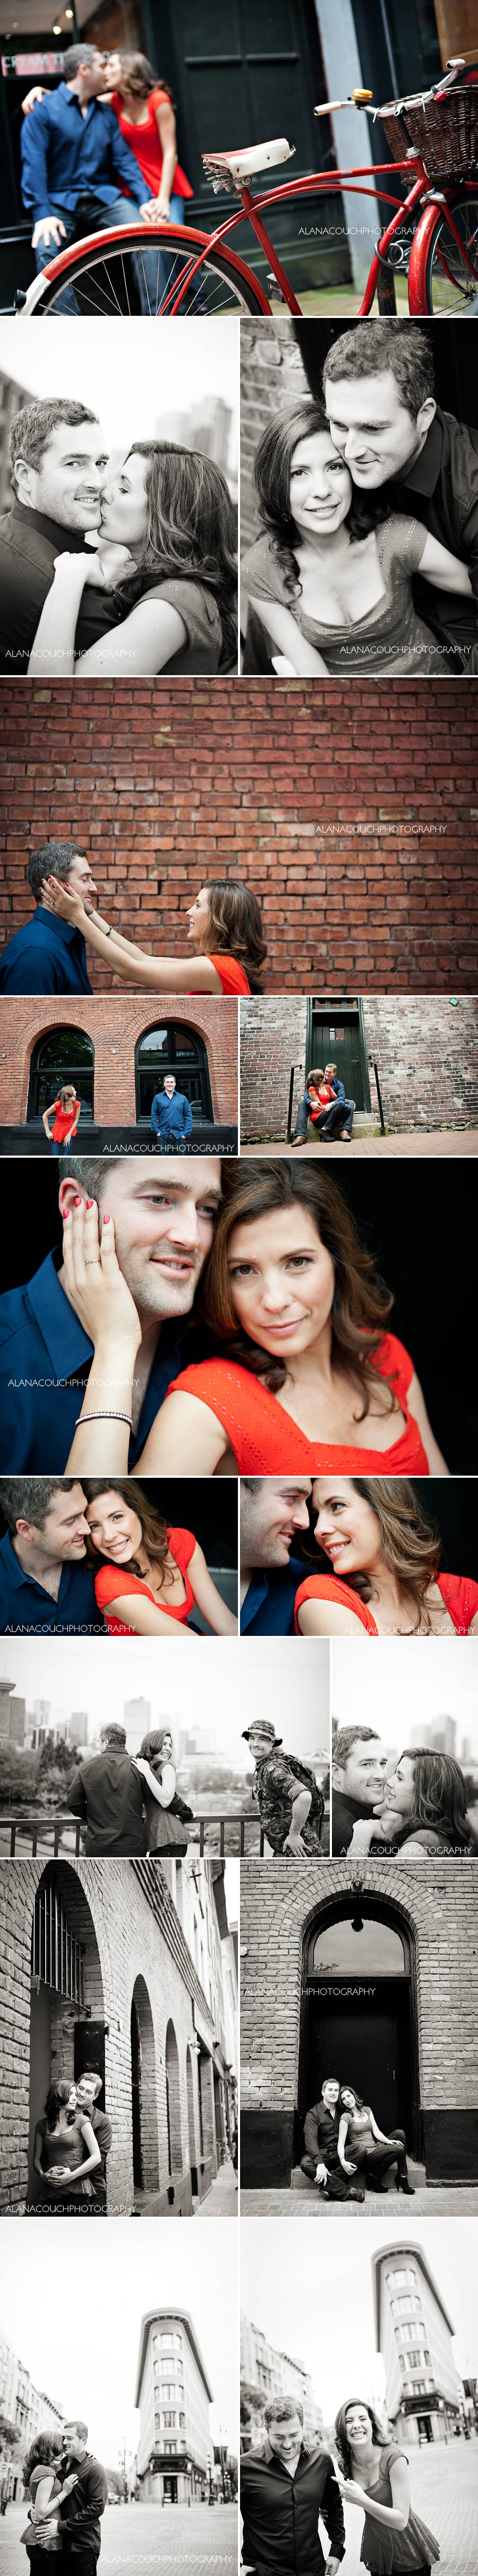 bc-canada-gastown-engagement-session-vintage-alana-couch-brick